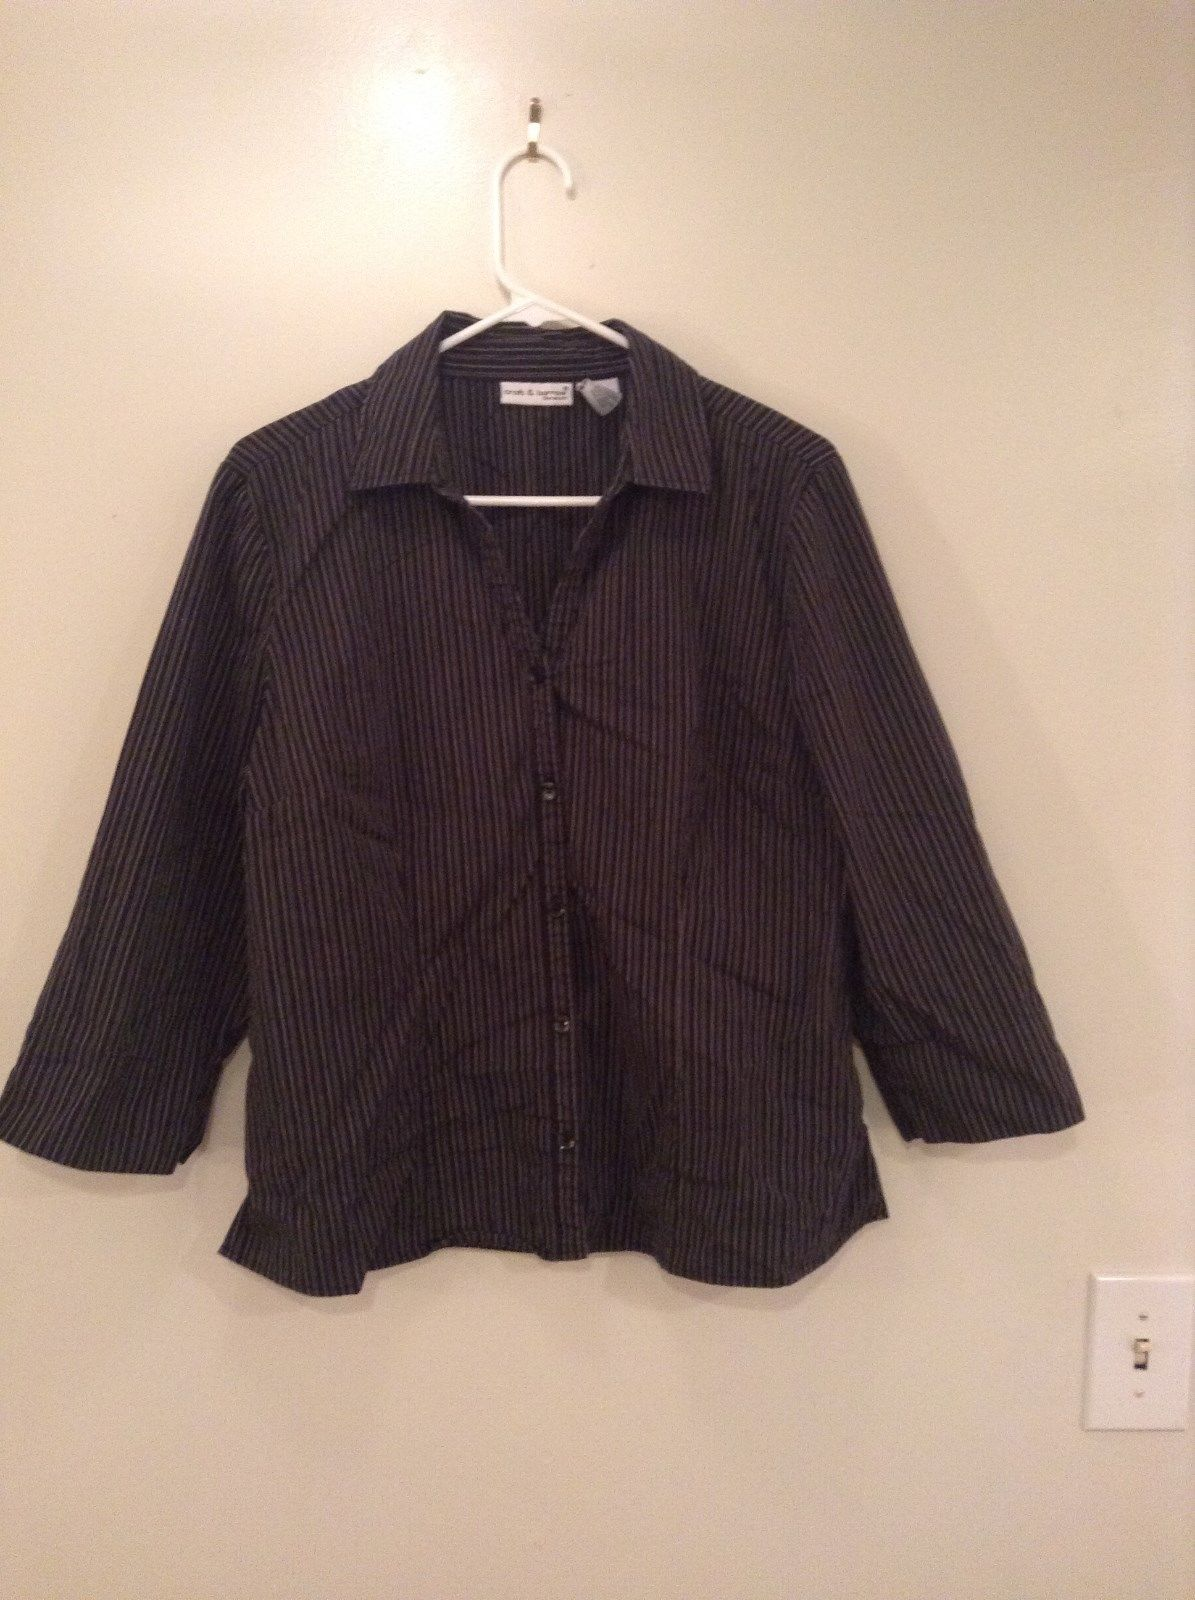 Black and White Striped Long Sleeve Button Up Shirt Croft and Burrow Size Large